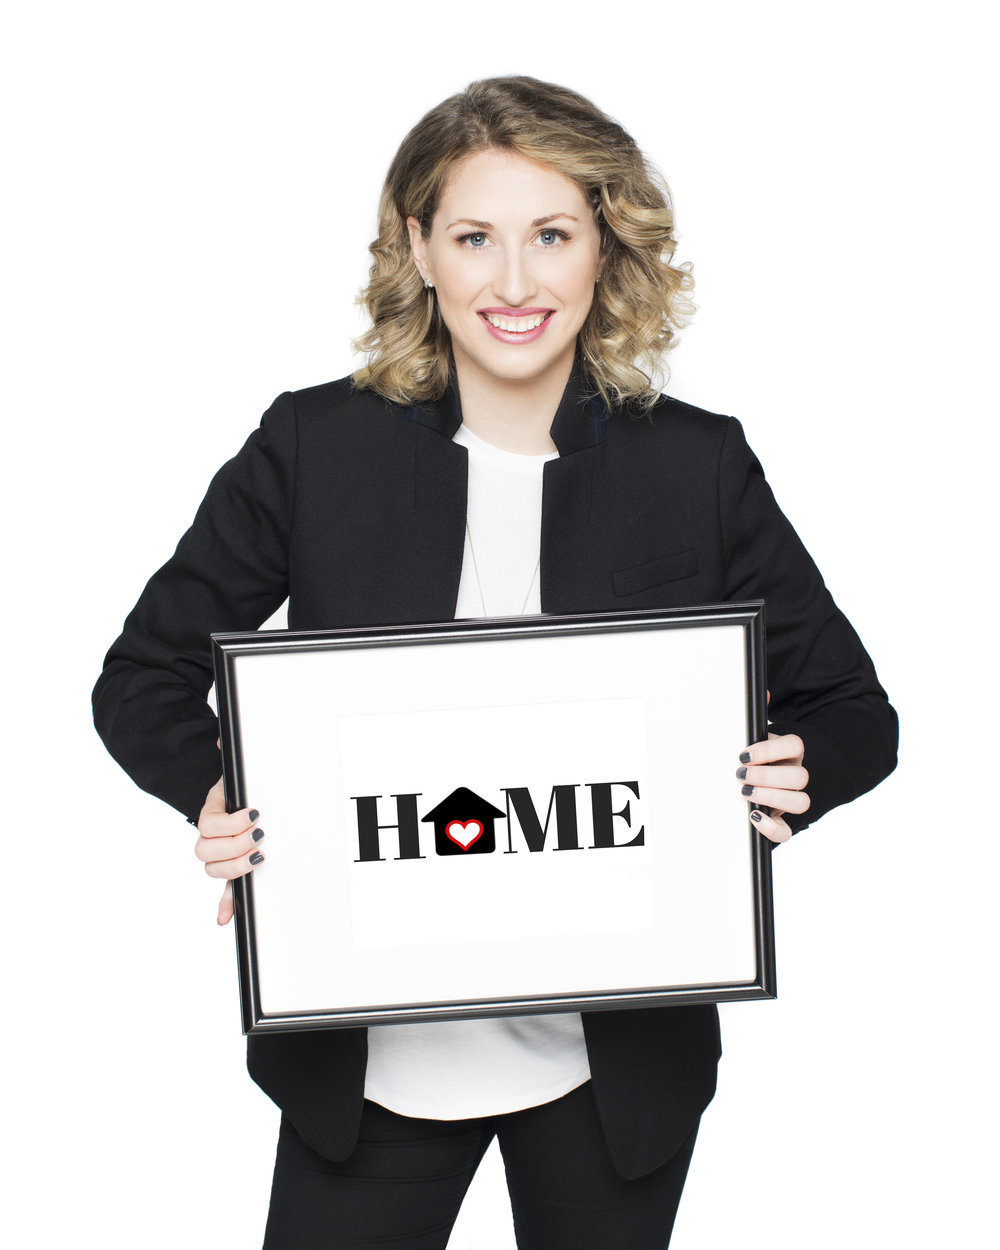 Whit - HomeSign - HighRes.jpg